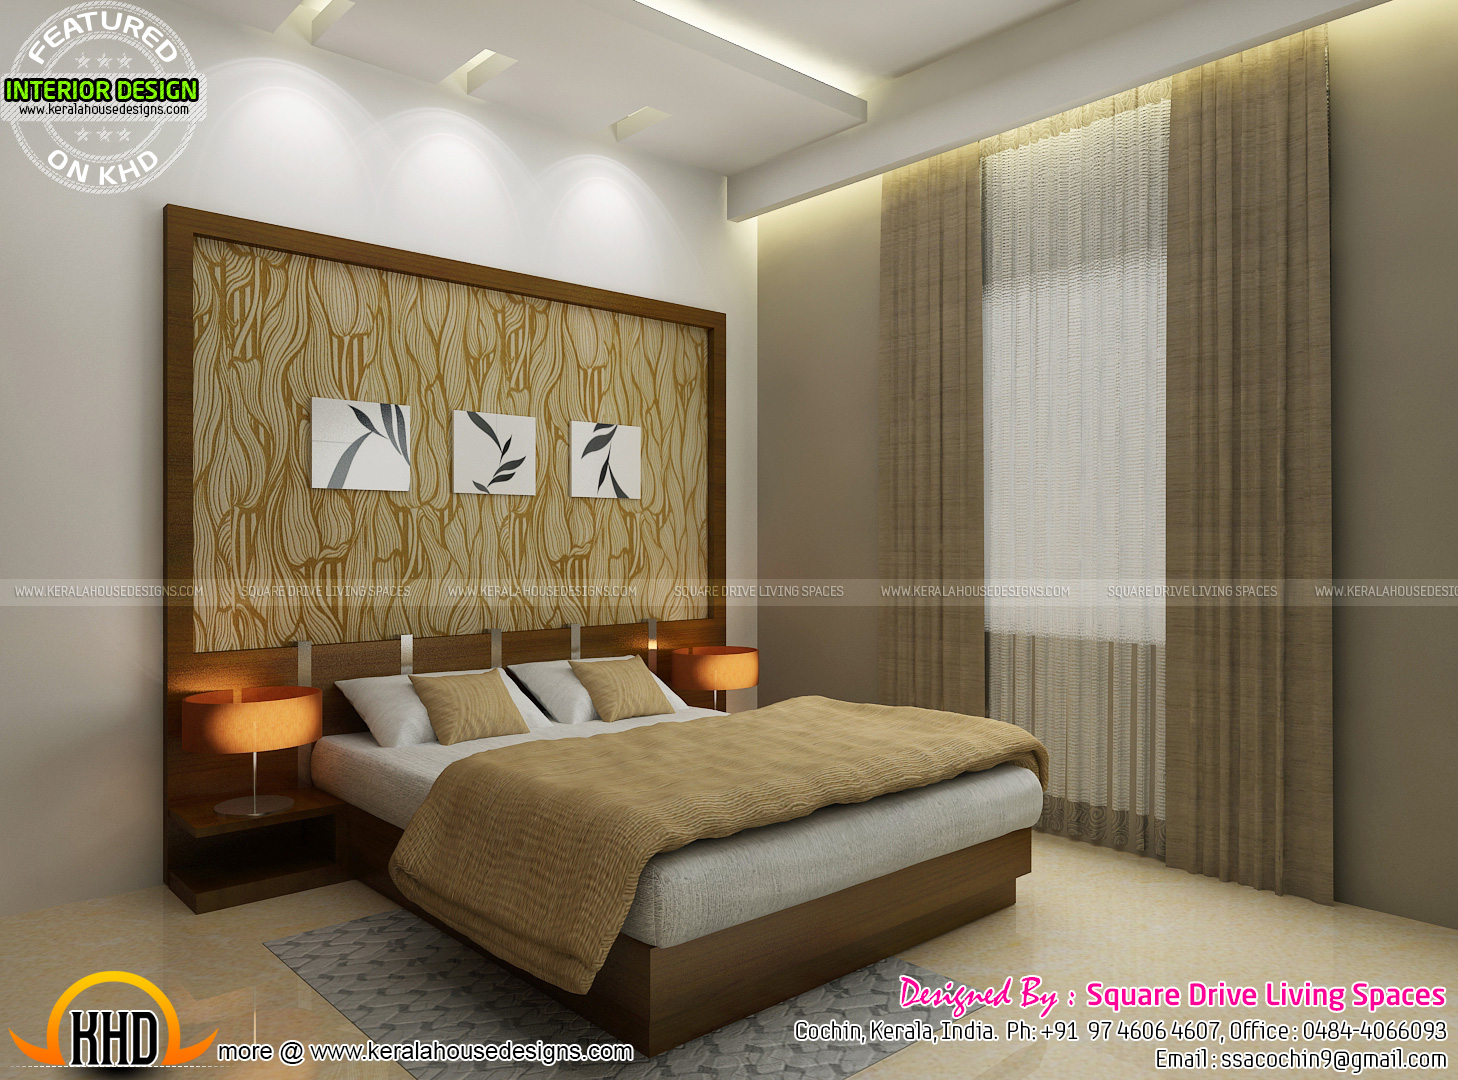 Interior designs of master bedroom living kitchen and for House interior design bedroom